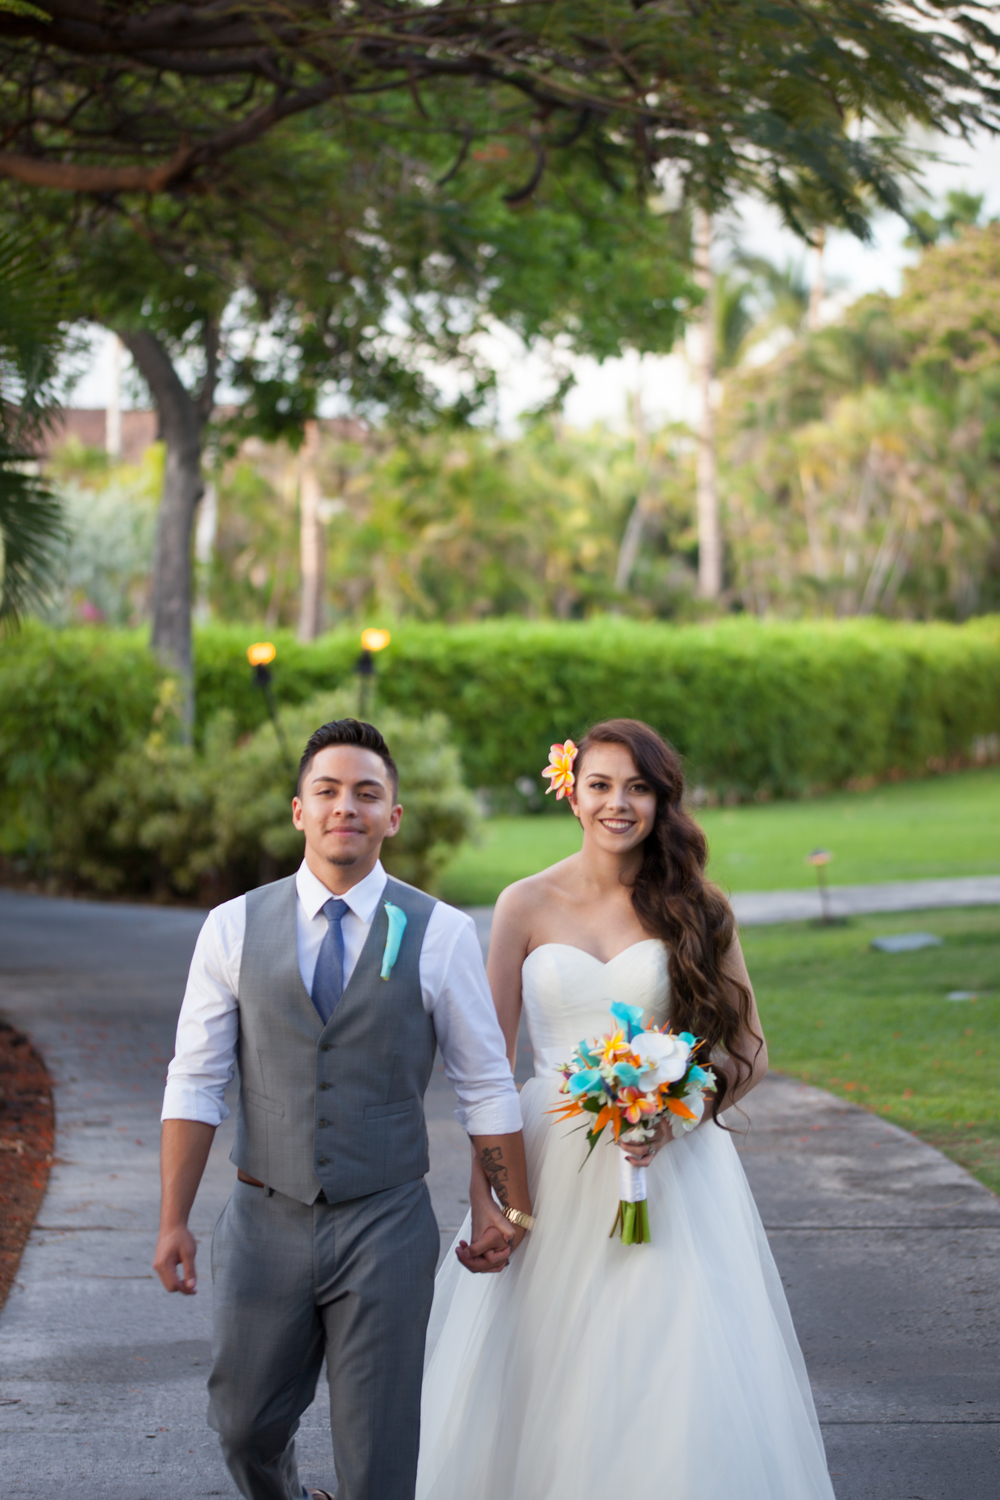 big island hawaii mauna lani resort wedding © kelilina photography 20160523181211-1.jpg